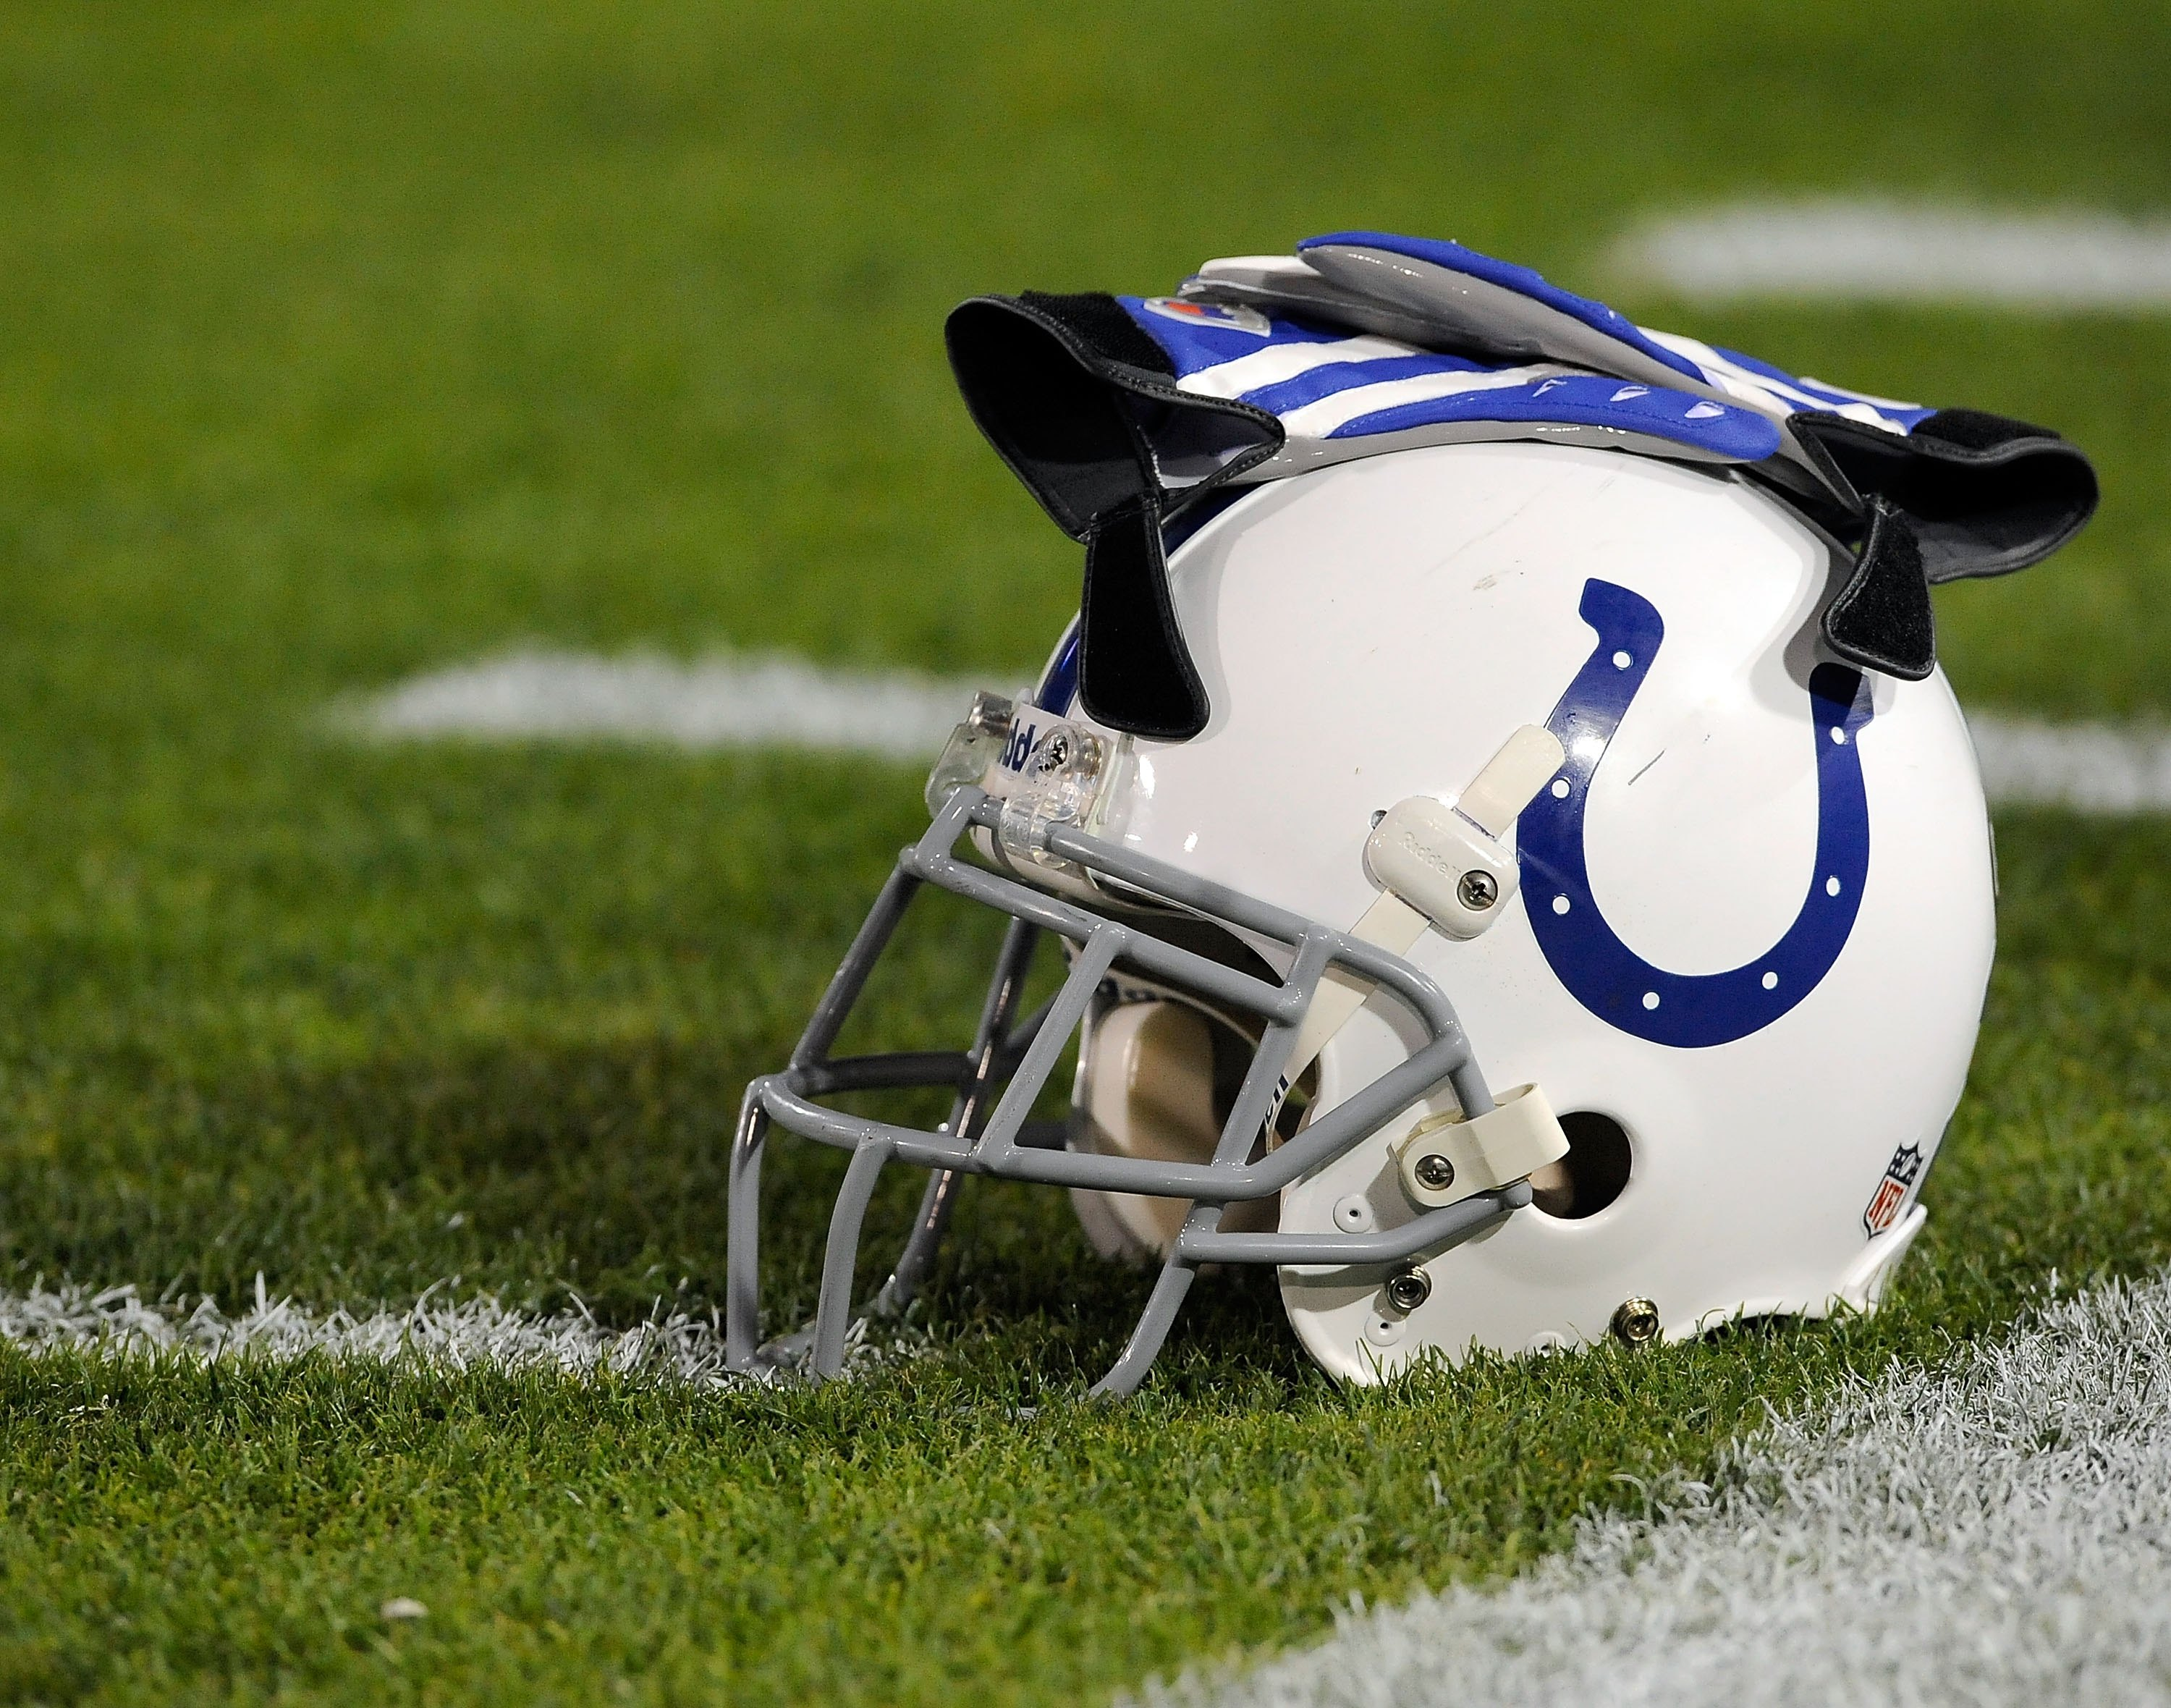 JACKSONVILLE, FL - DECEMBER 18:  A helmet and gloves of the Indianapolis Colts on the sidelines prior to the game against the Jacksonville Jaguars at Jacksonville Municipal Stadium on December 18, 2008 in Jacksonville, Florida.  (Photo by Sam Greenwood/Ge